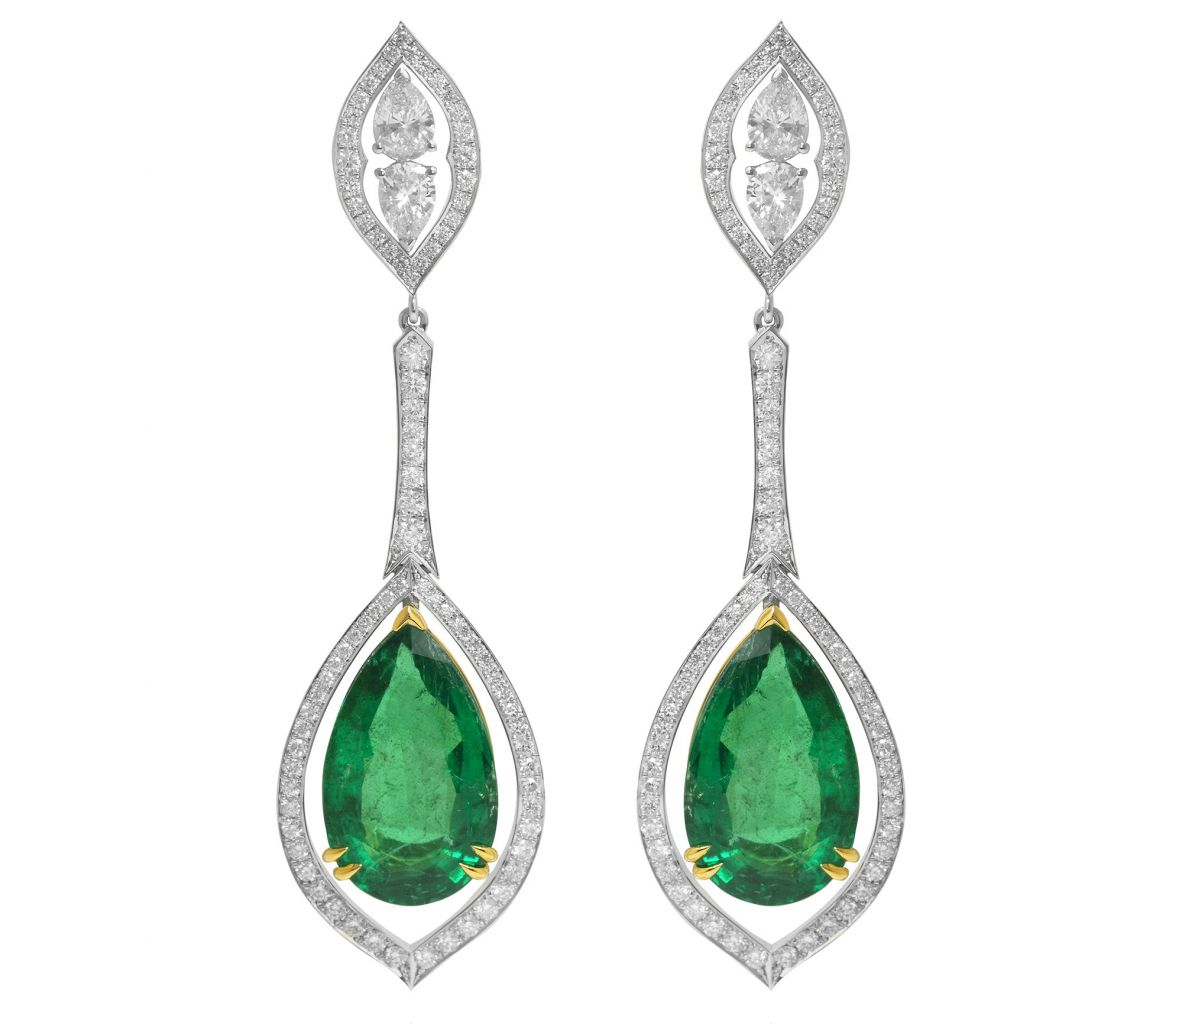 Leibish and Co. emerald and diamond pear drop earrings